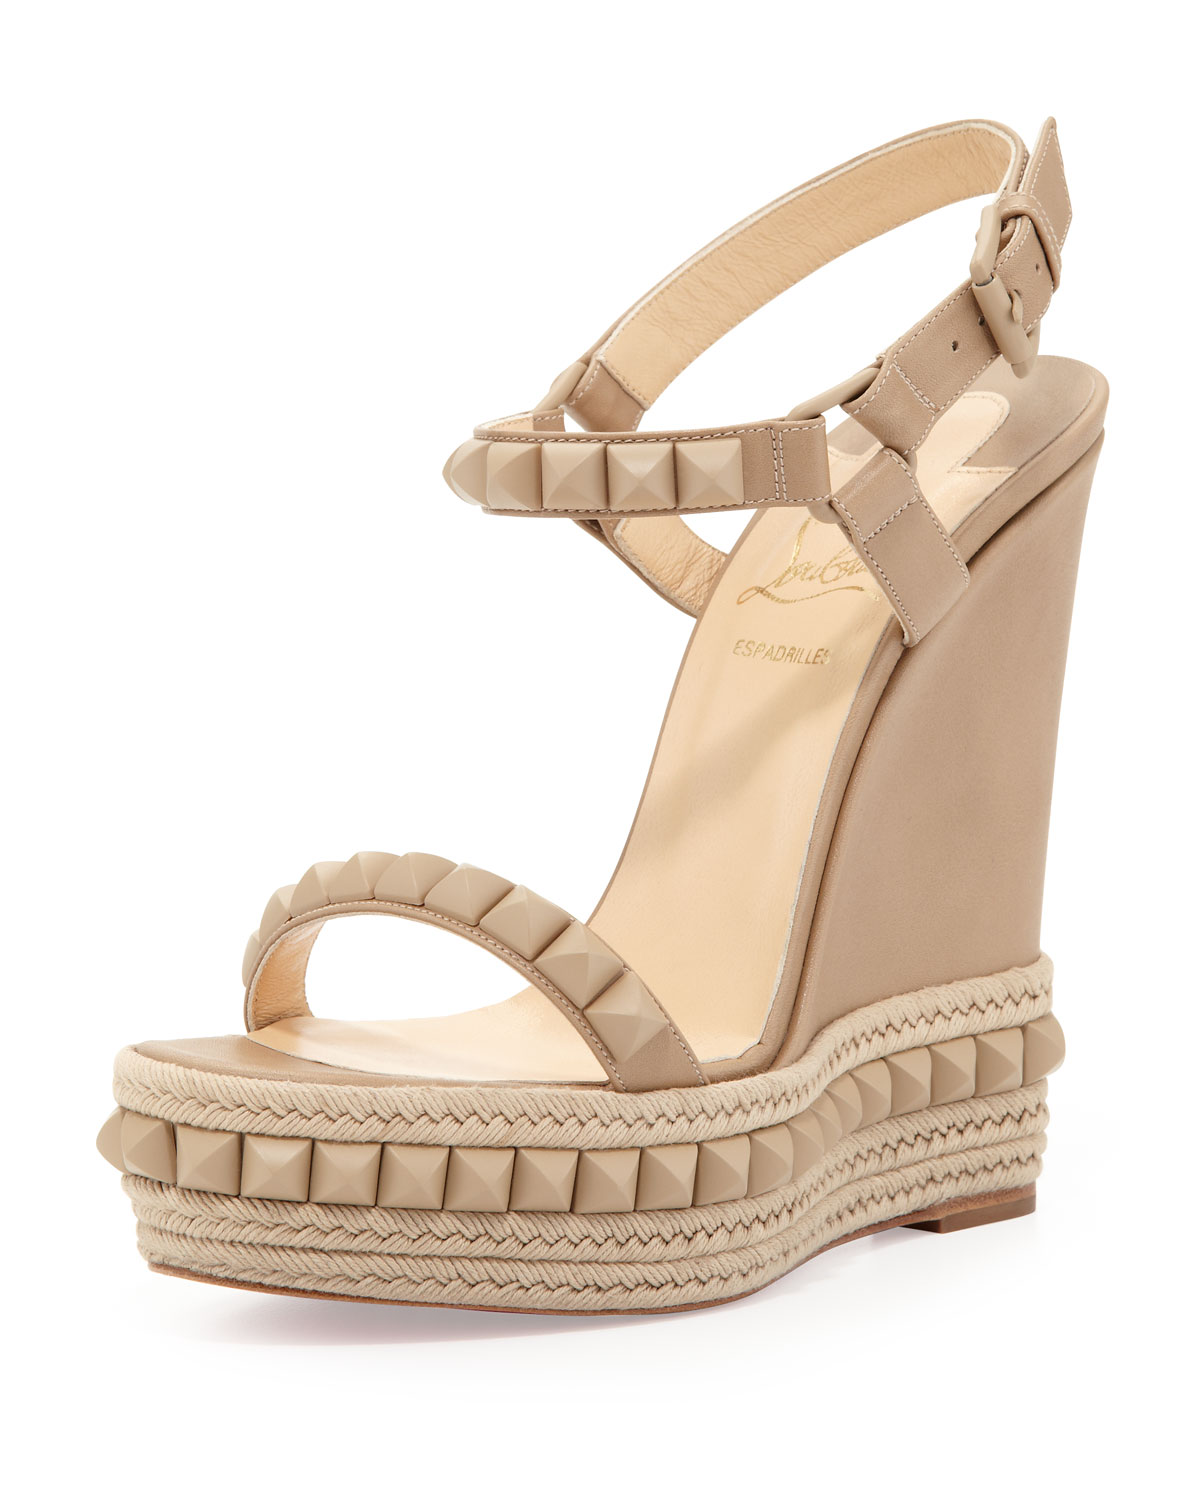 christian louboutin cataclou studded leather wedge sandals